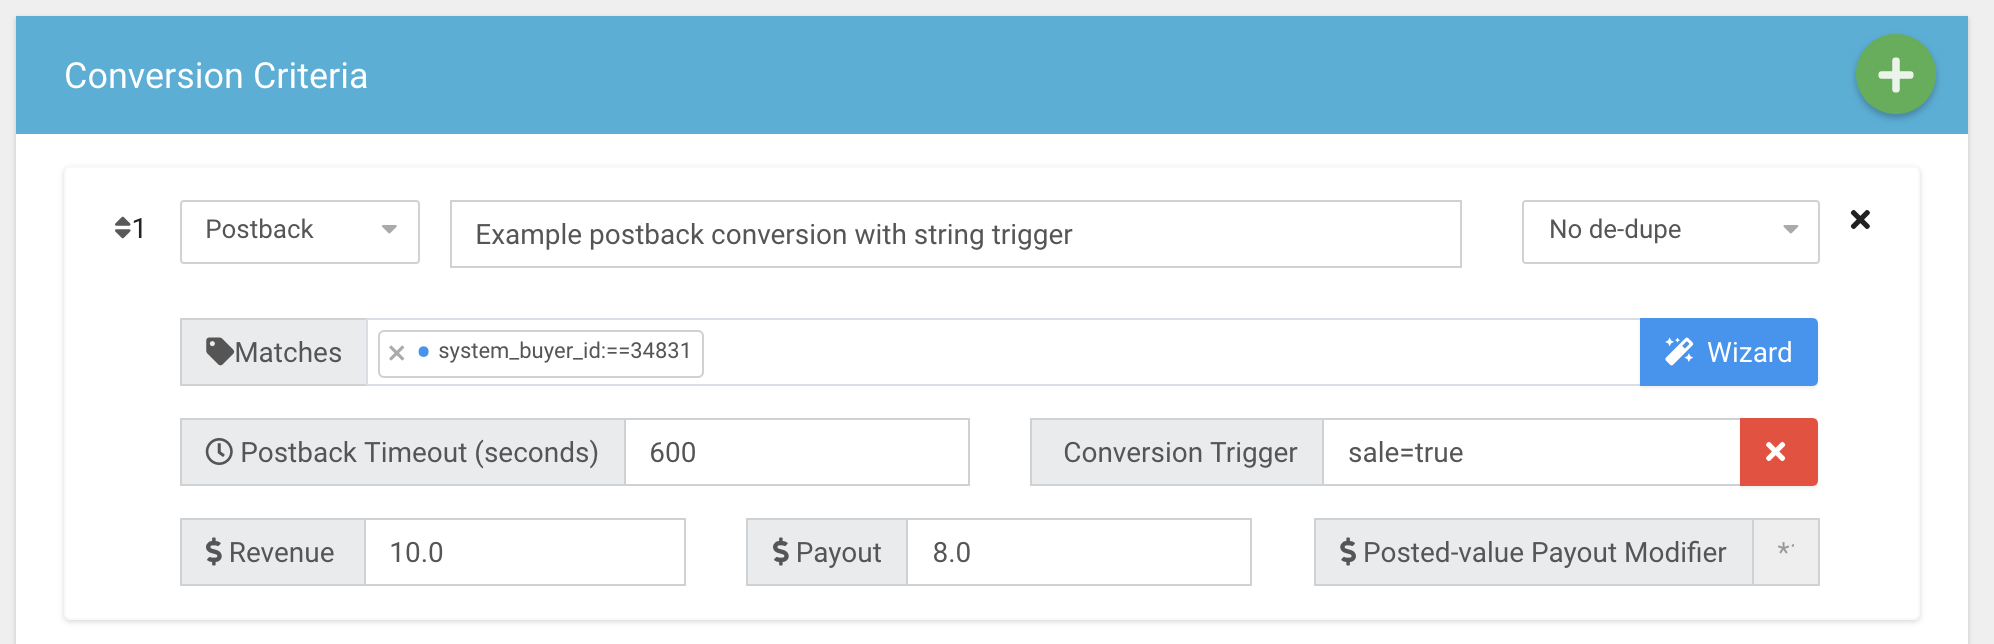 Configuring a postback conversion with string matching.